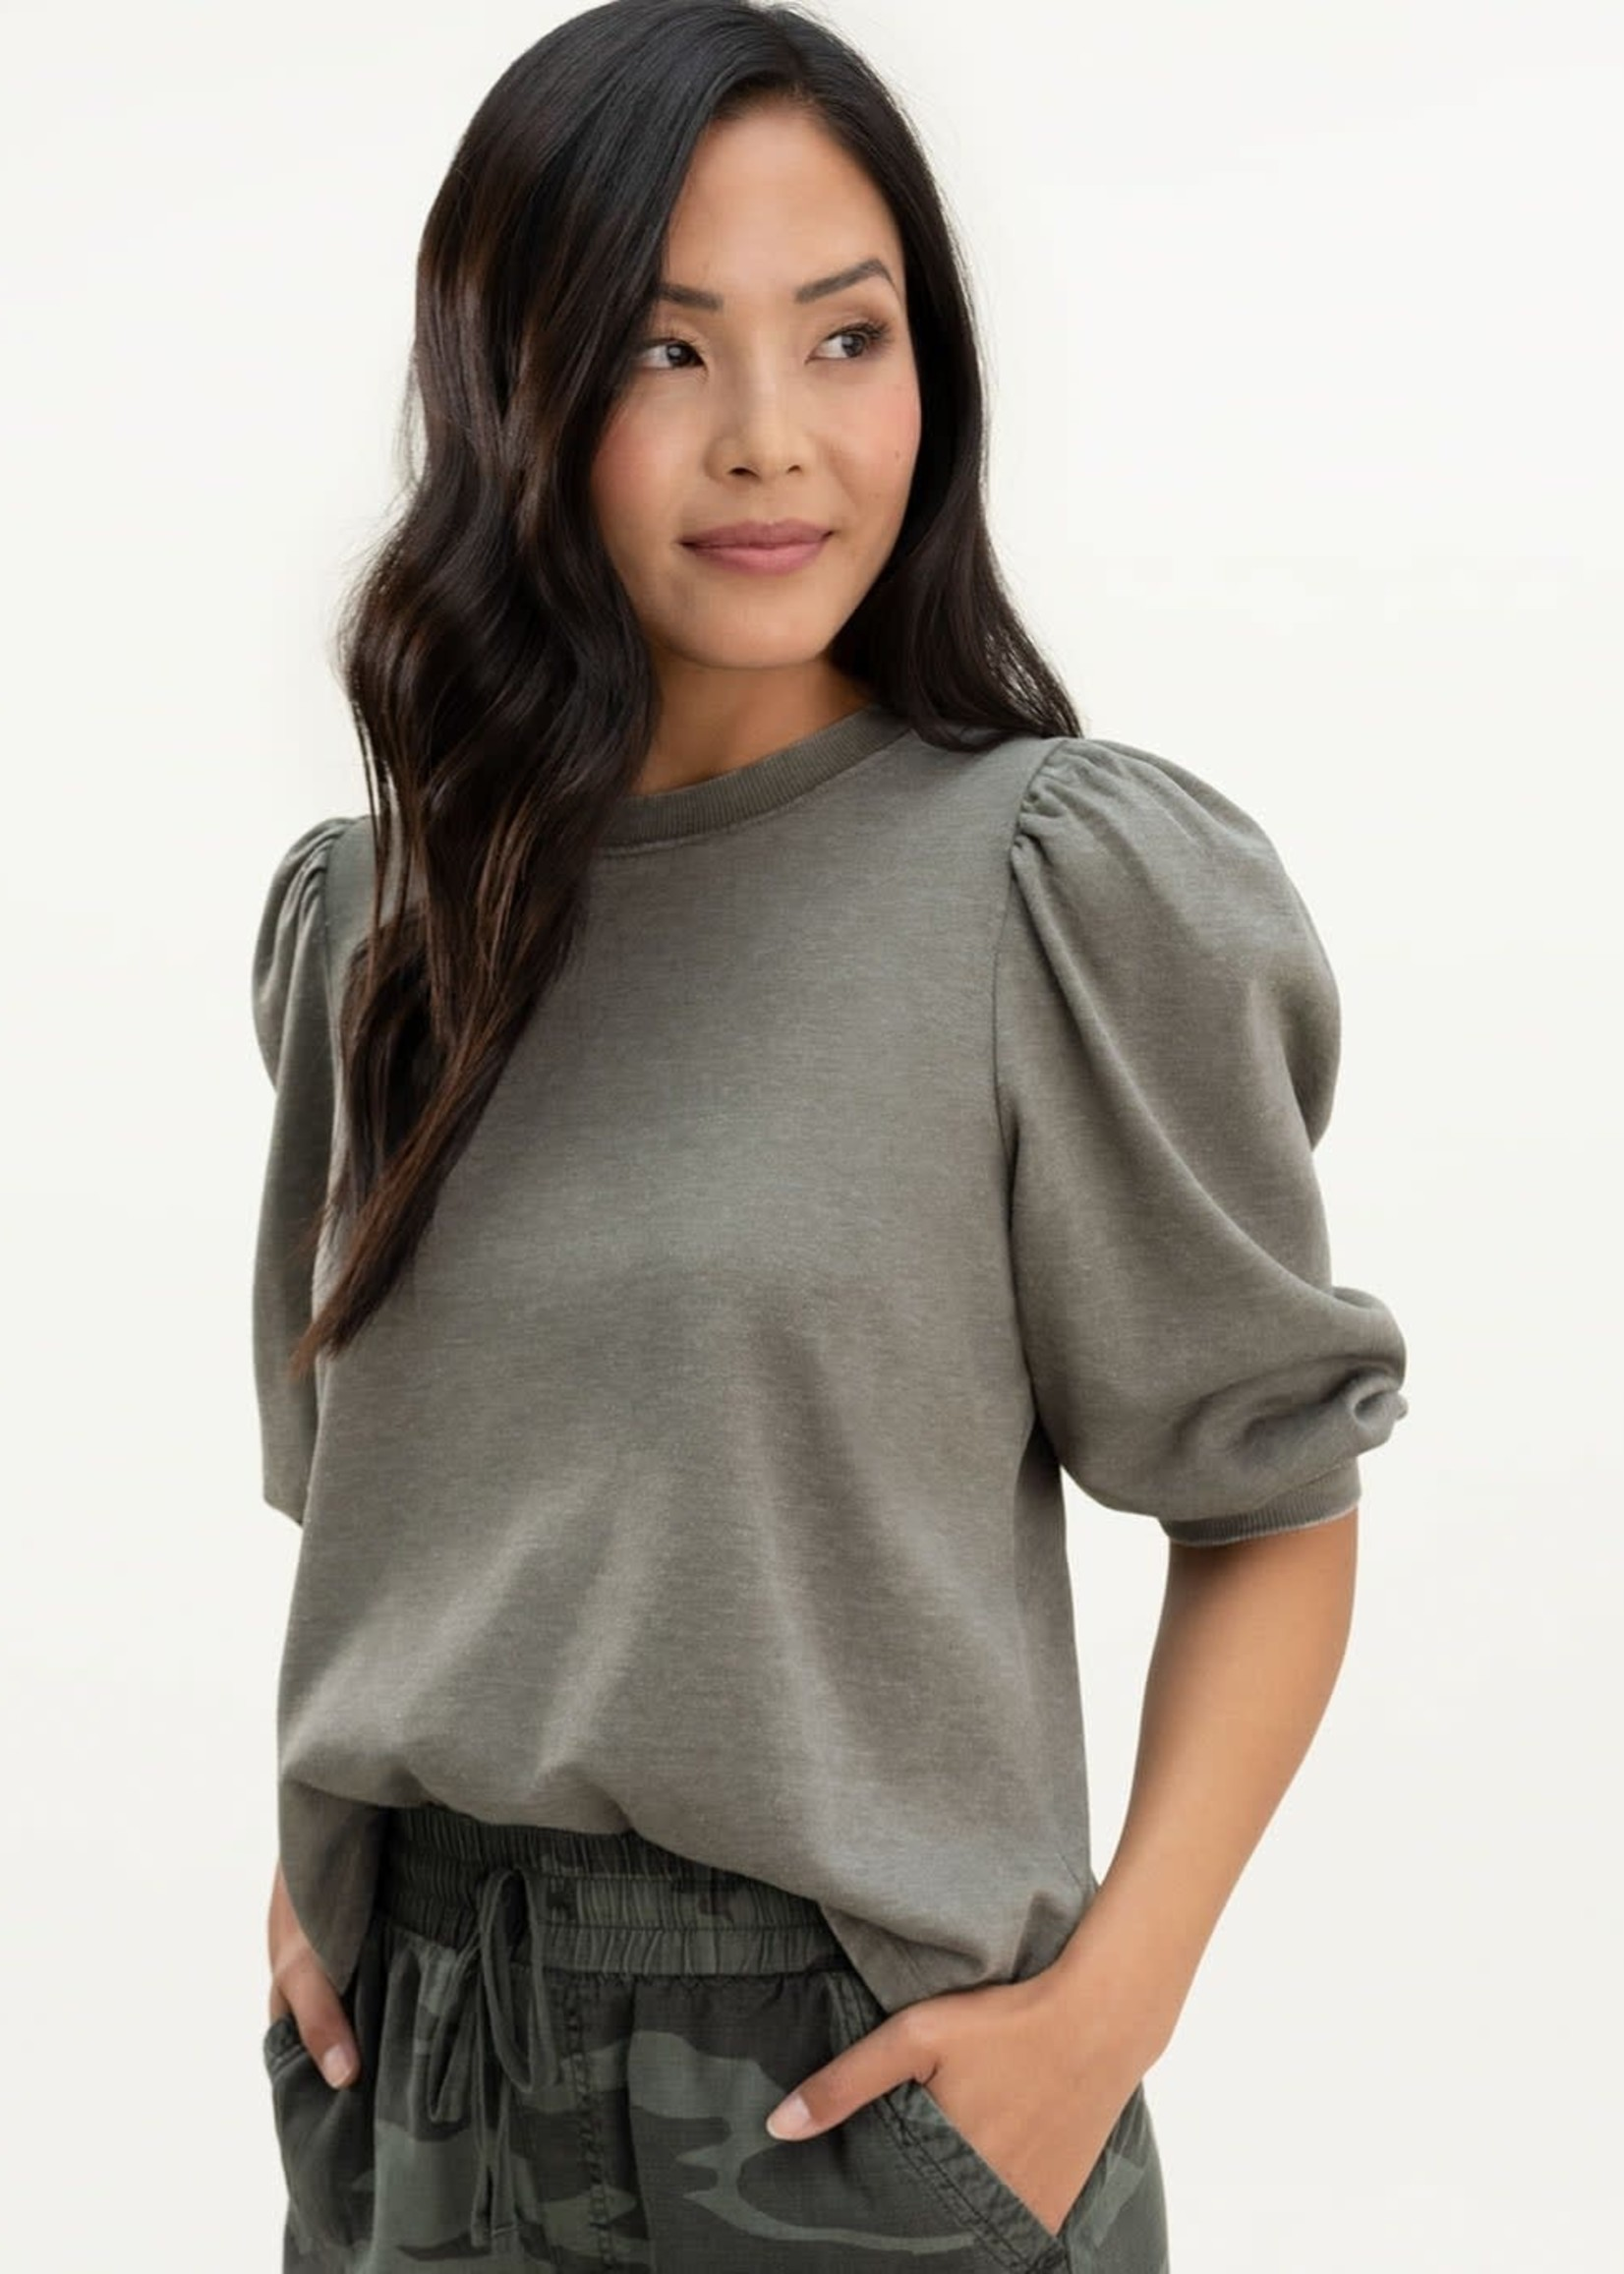 Mariposa Pullover Olive